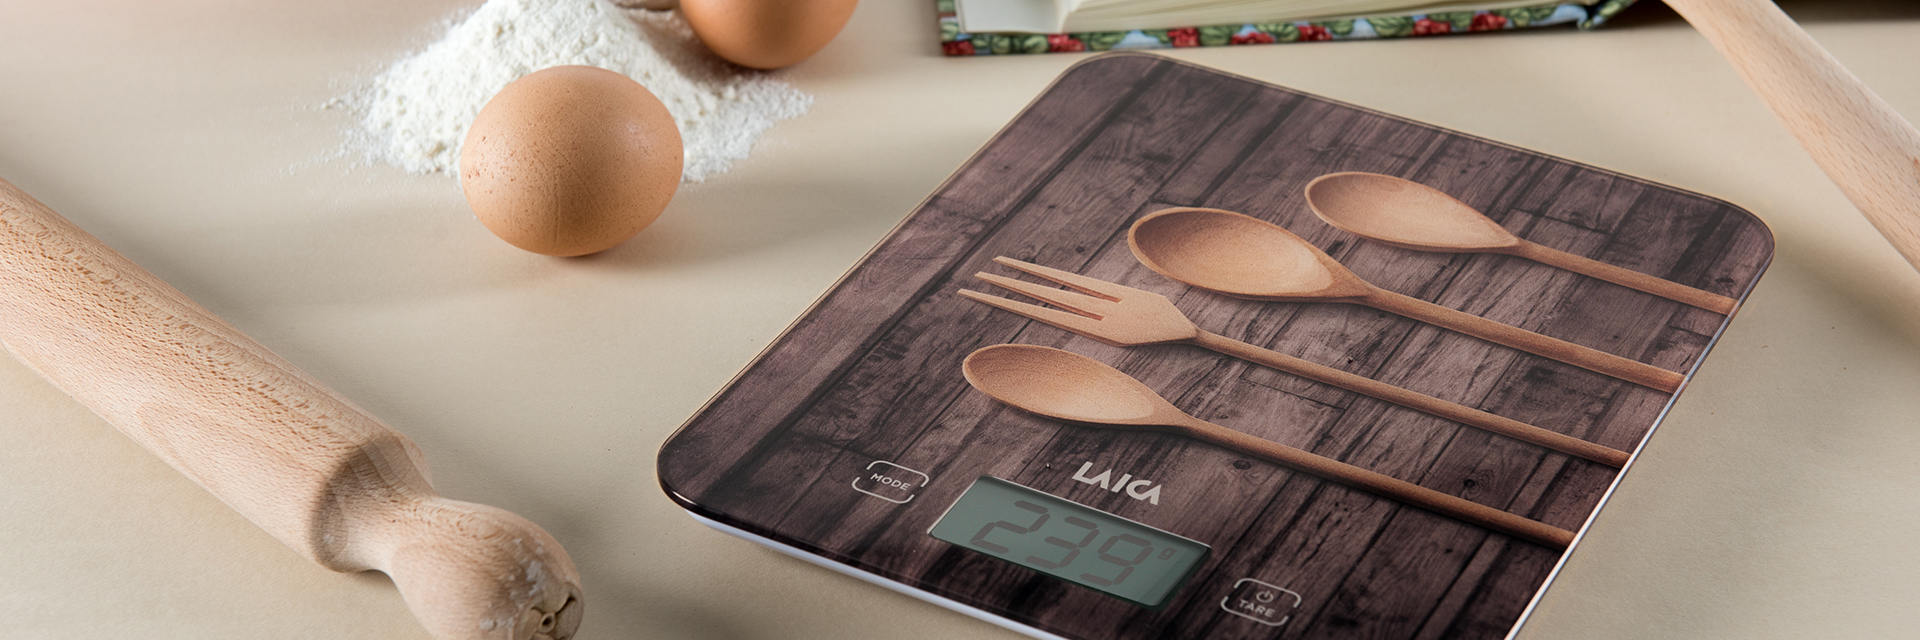 Electronic kitchen scale KS5010 LAICA